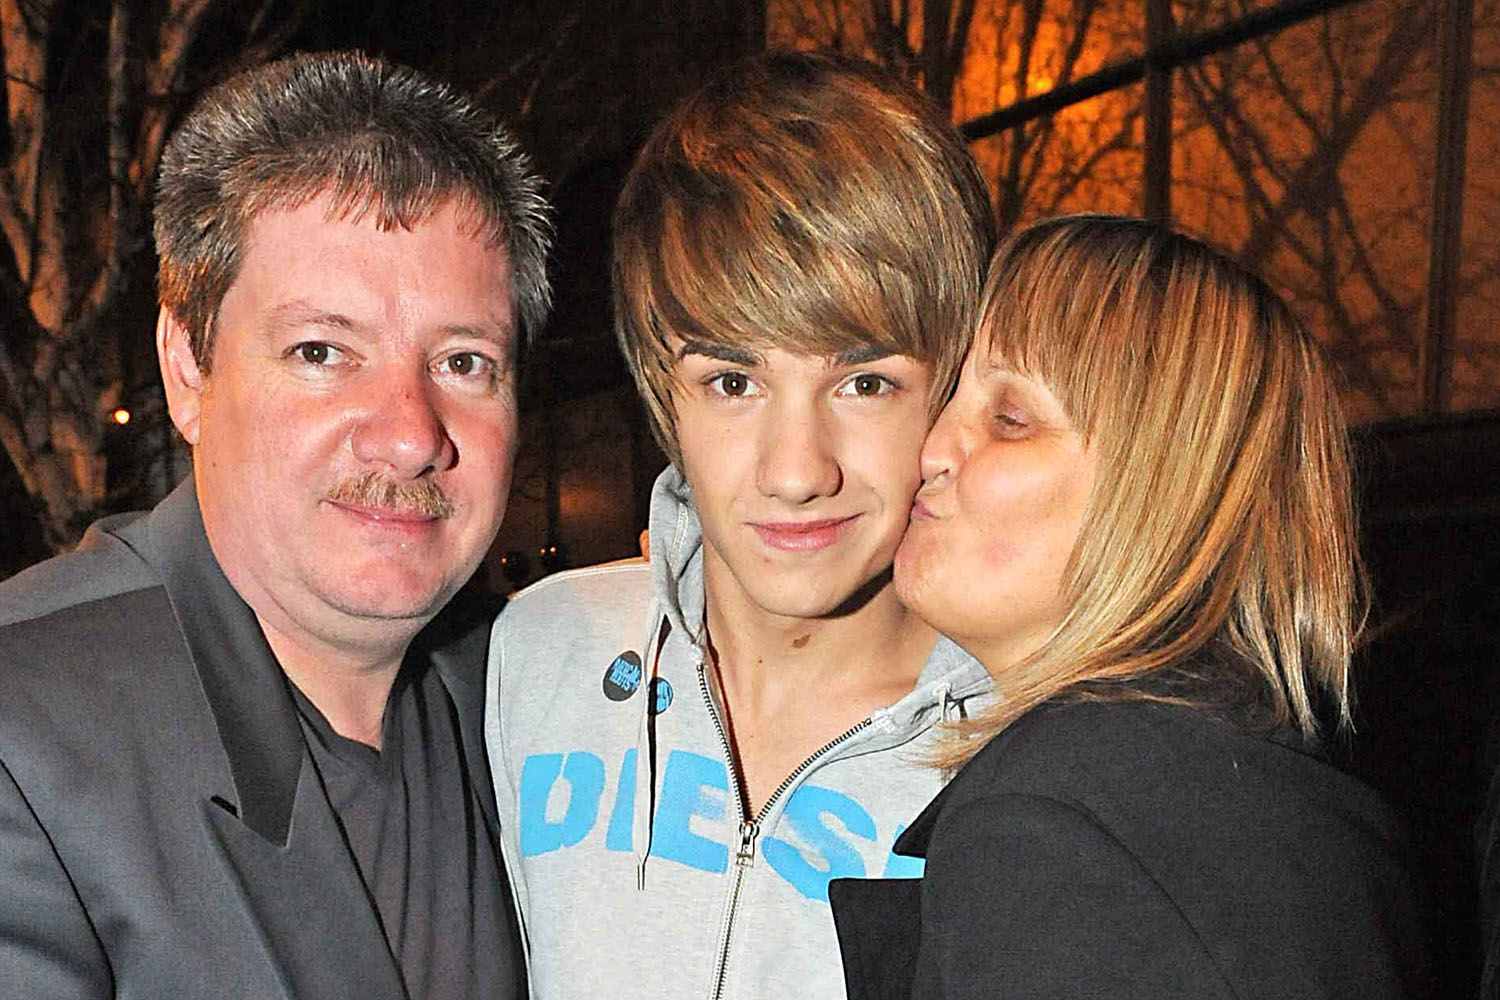 Liam Payne: Facts about the One Direction singer